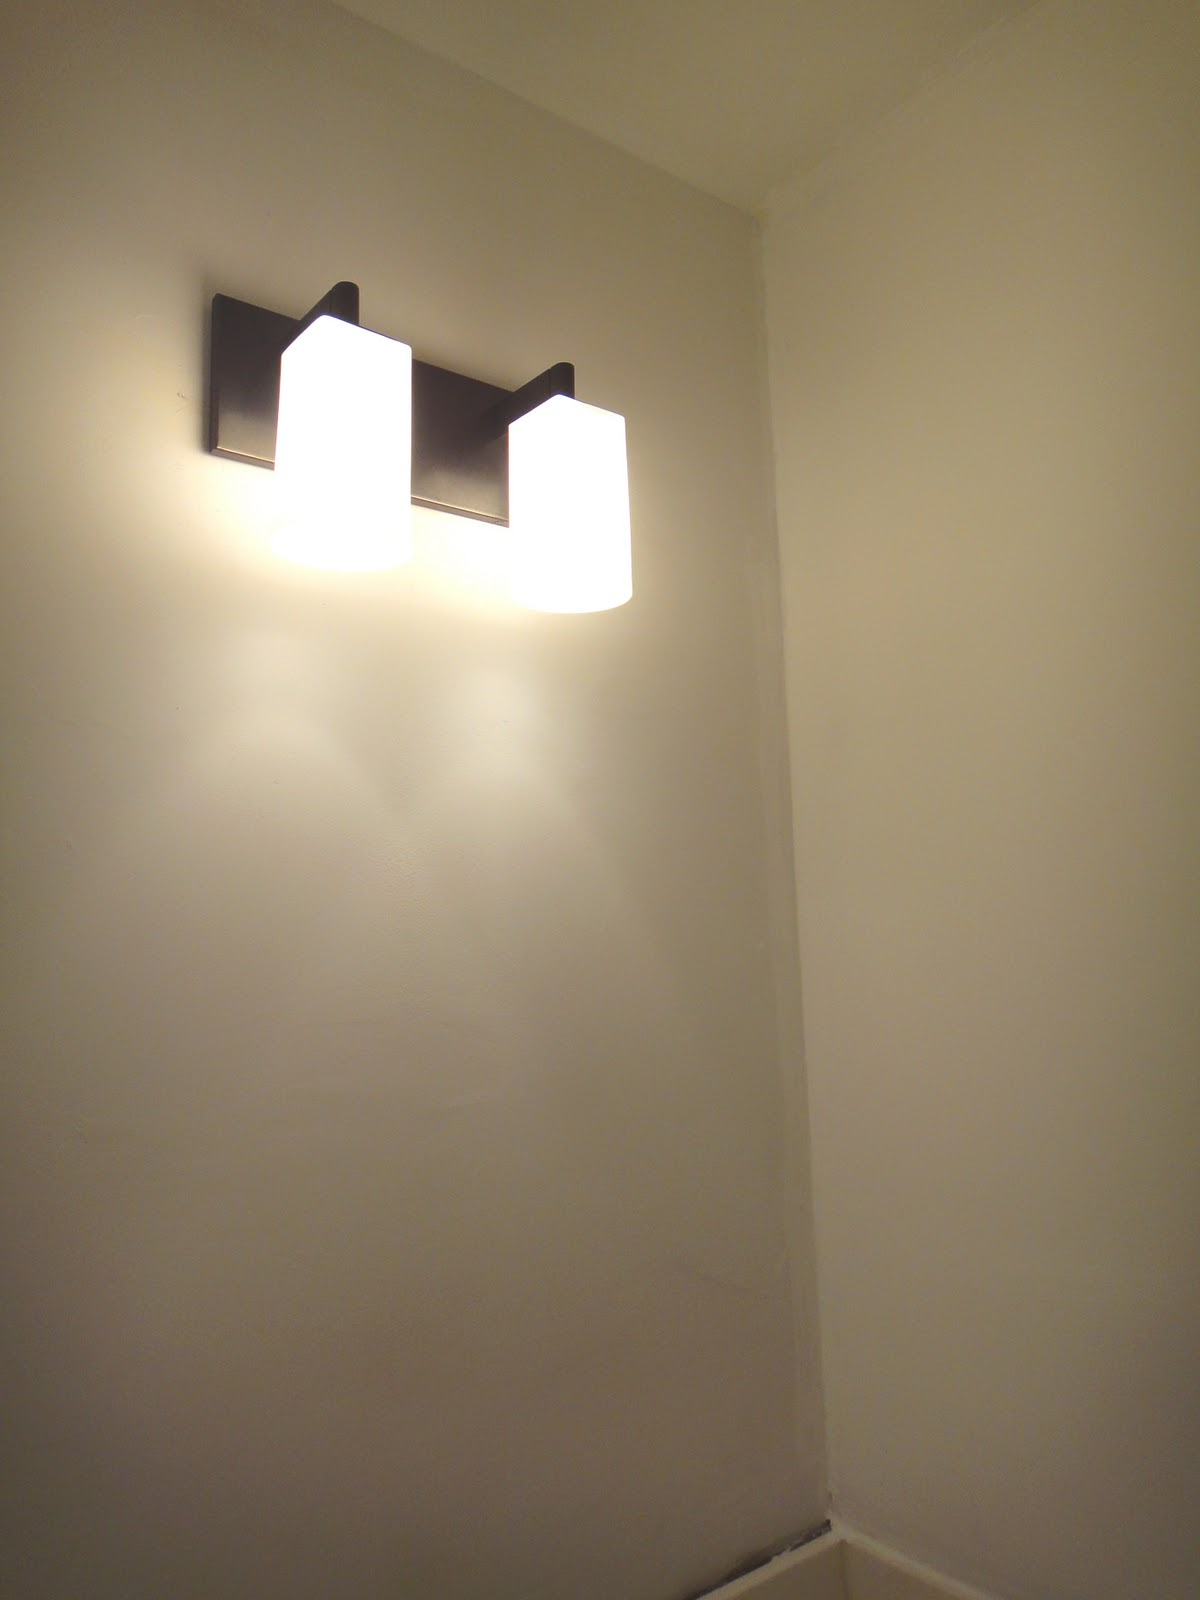 Outlet Decoration Bathroom Lighting With Electrical Outlet Simple Home